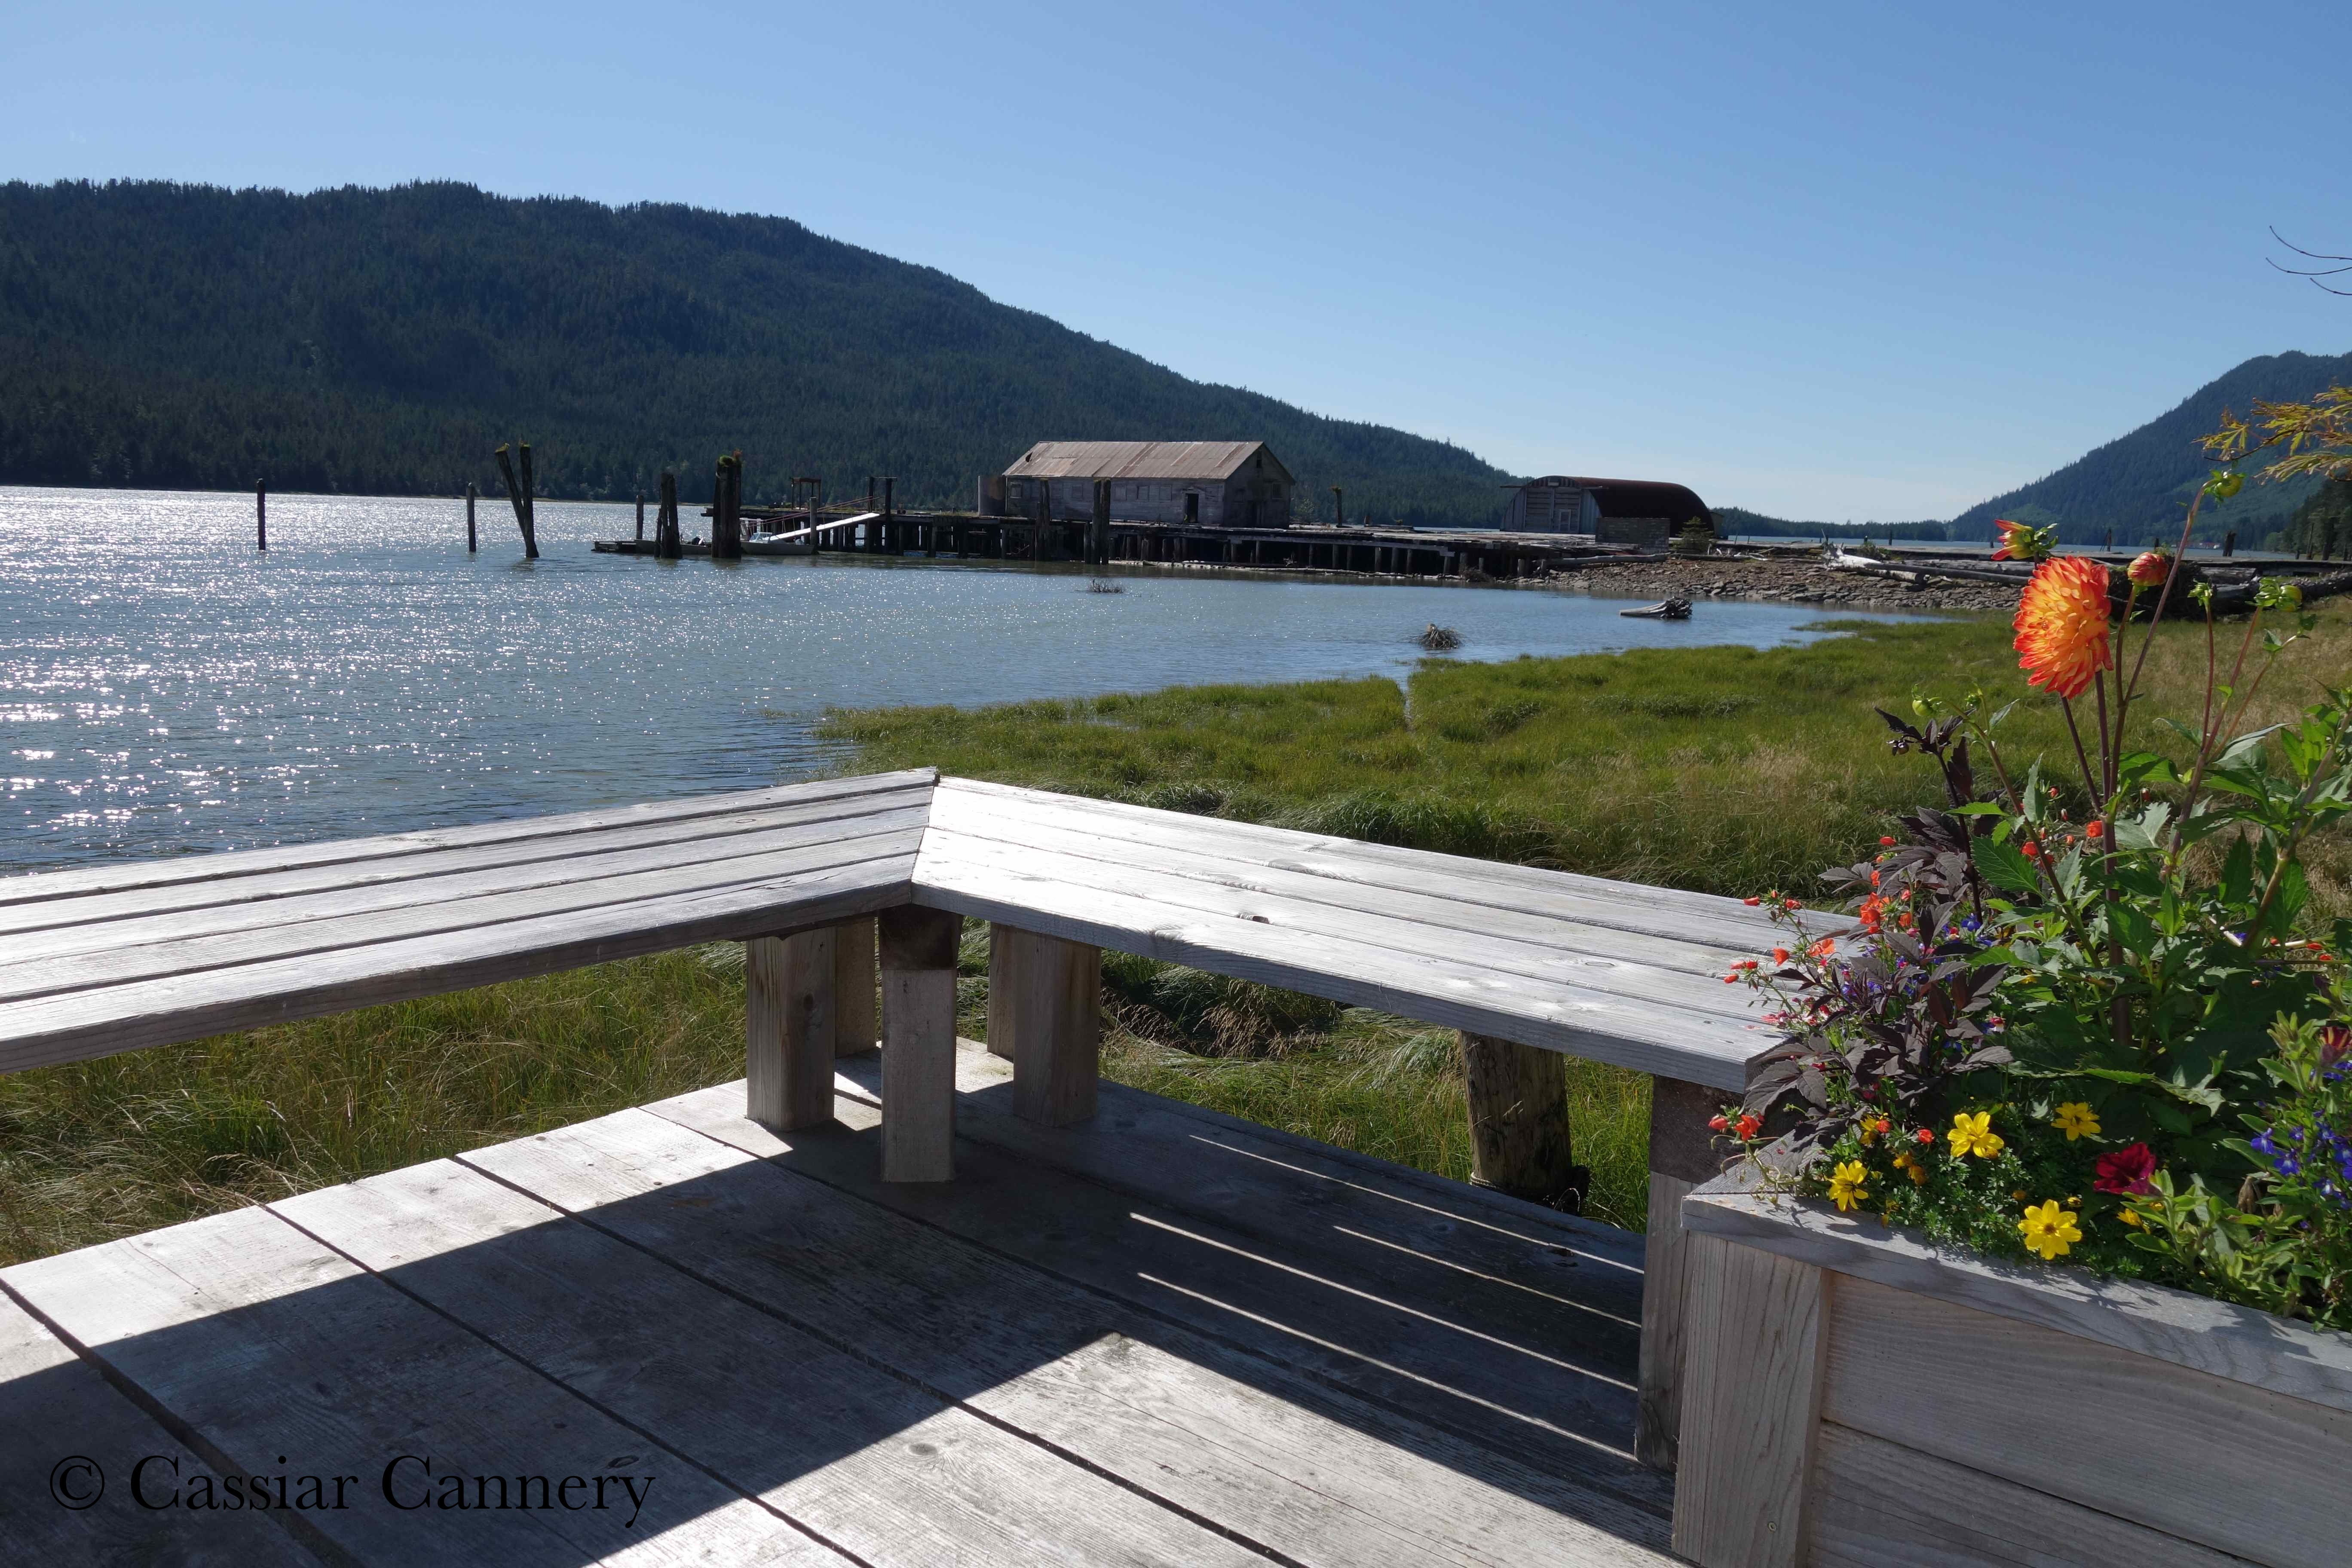 Cassiar Cannery - Sockeye House - view of the docks from the porch